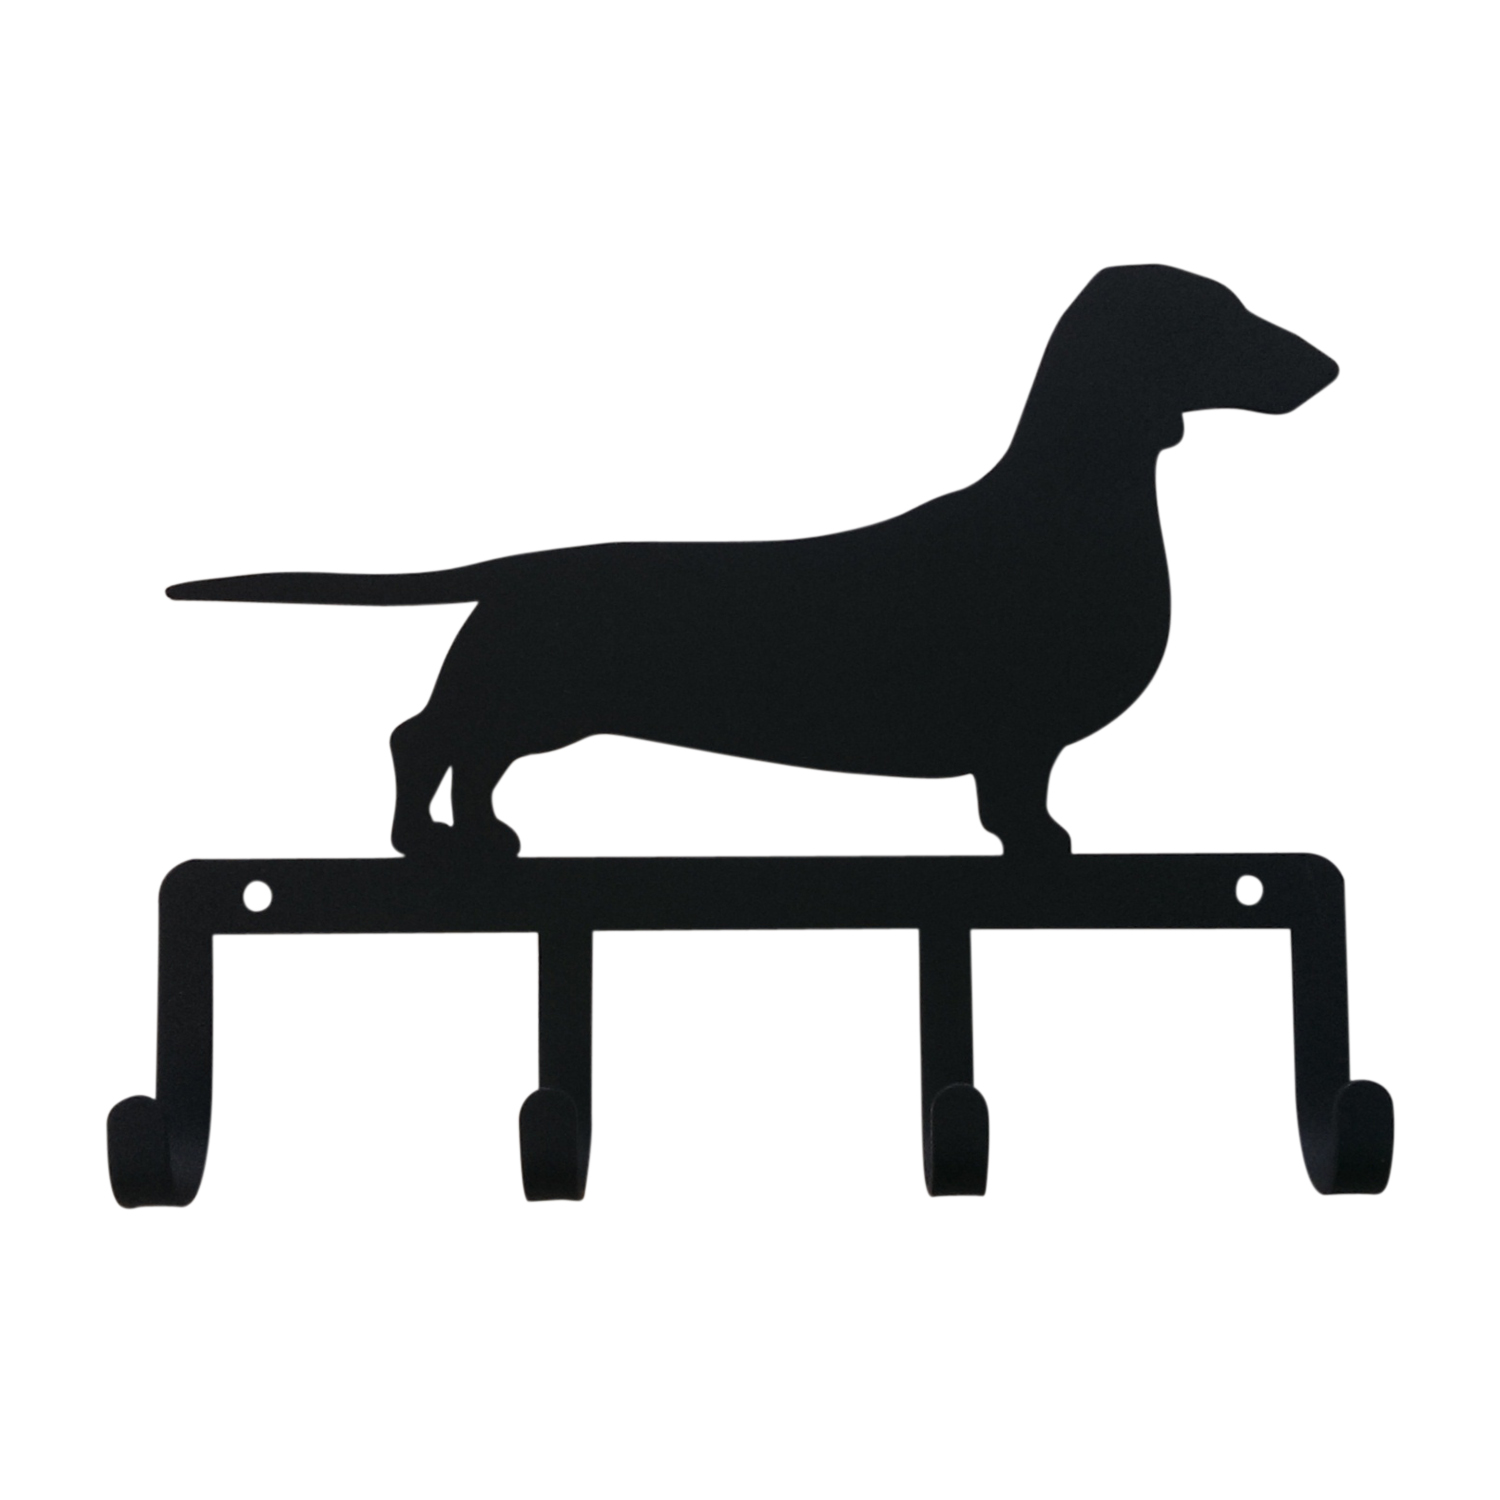 Dachshund - Key Holder